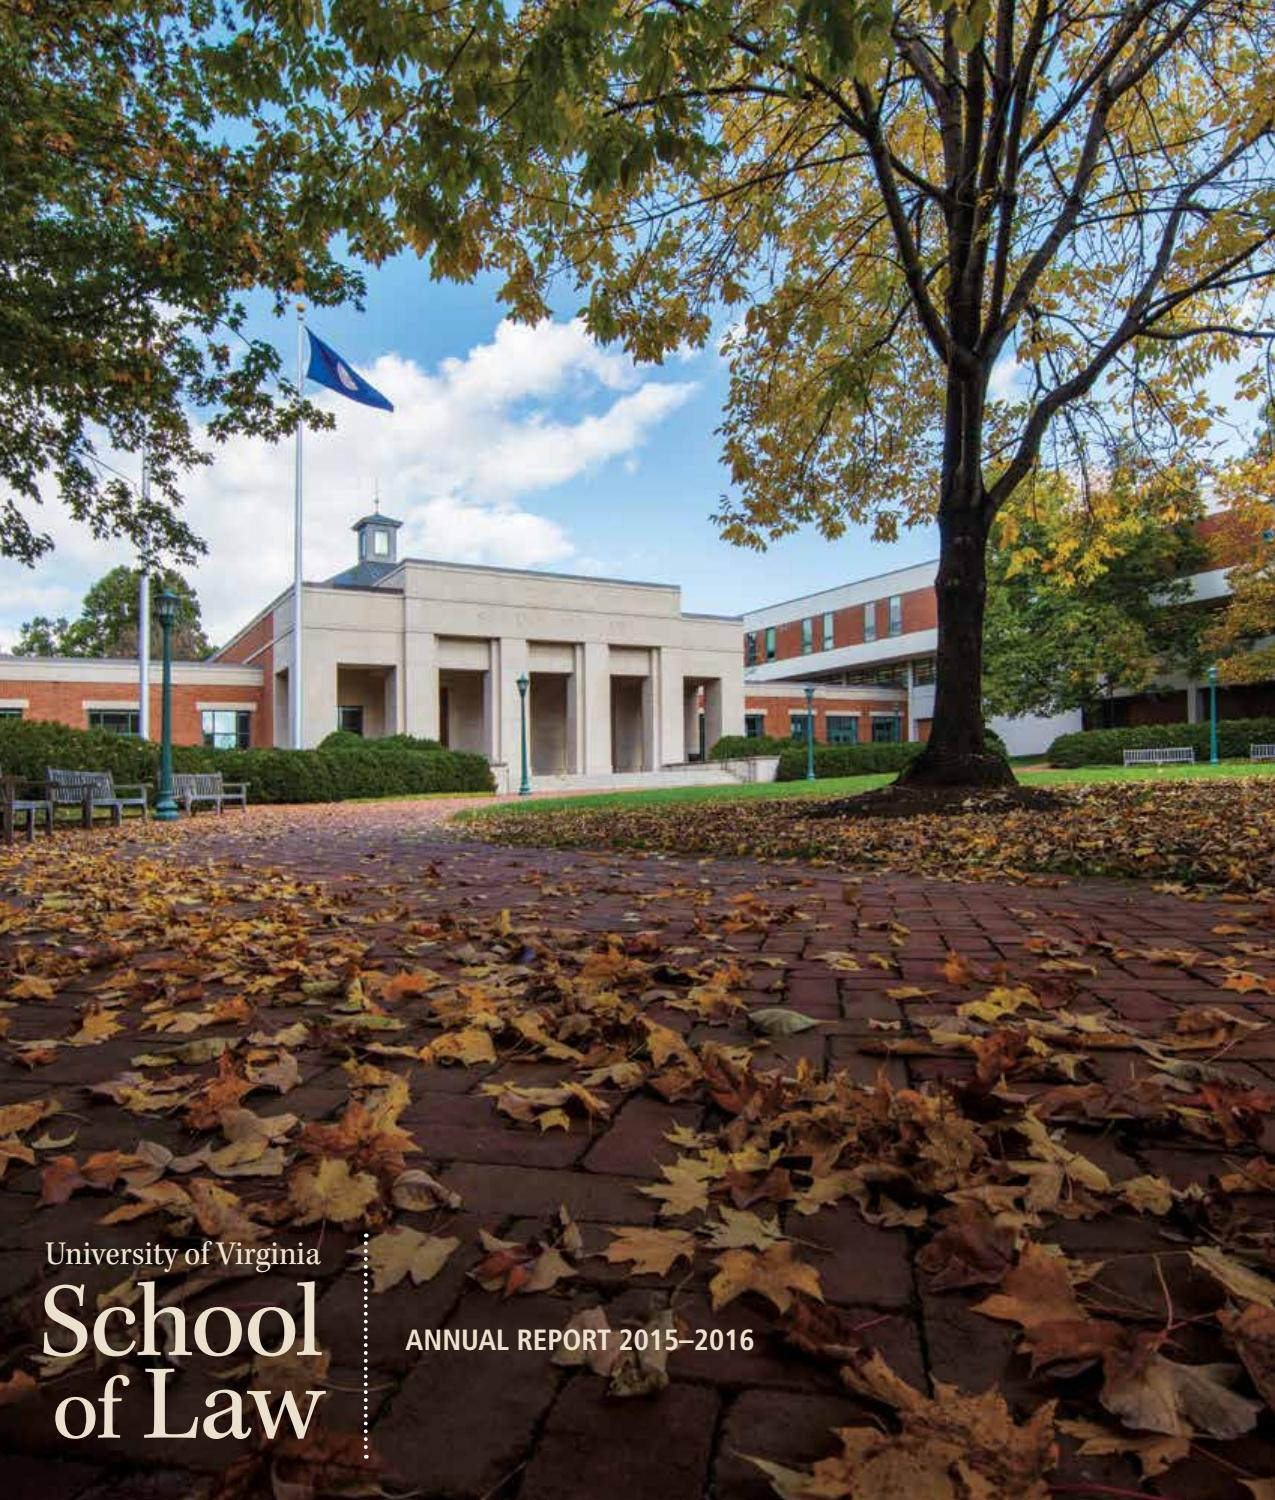 Uva law annual report 2015 16 by university of virginia for Dettmer homes